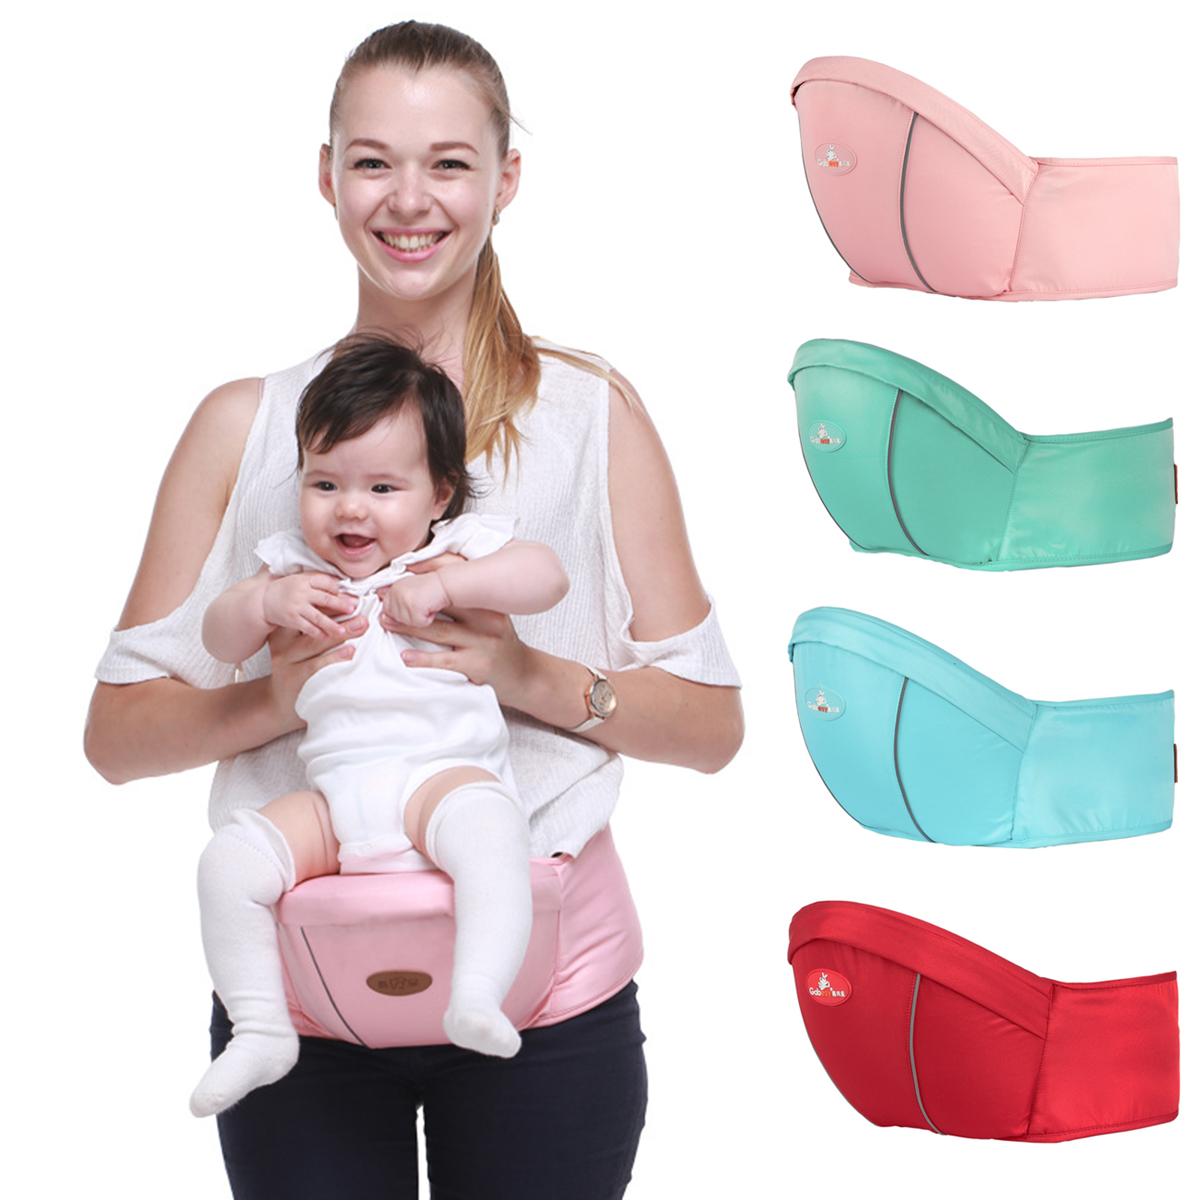 Drop Shipping Hipse A Child's Carrying For Baby Hip Seat Waist Stool Portable Front Facing Ergonomic Baby Hip Seat Carrier